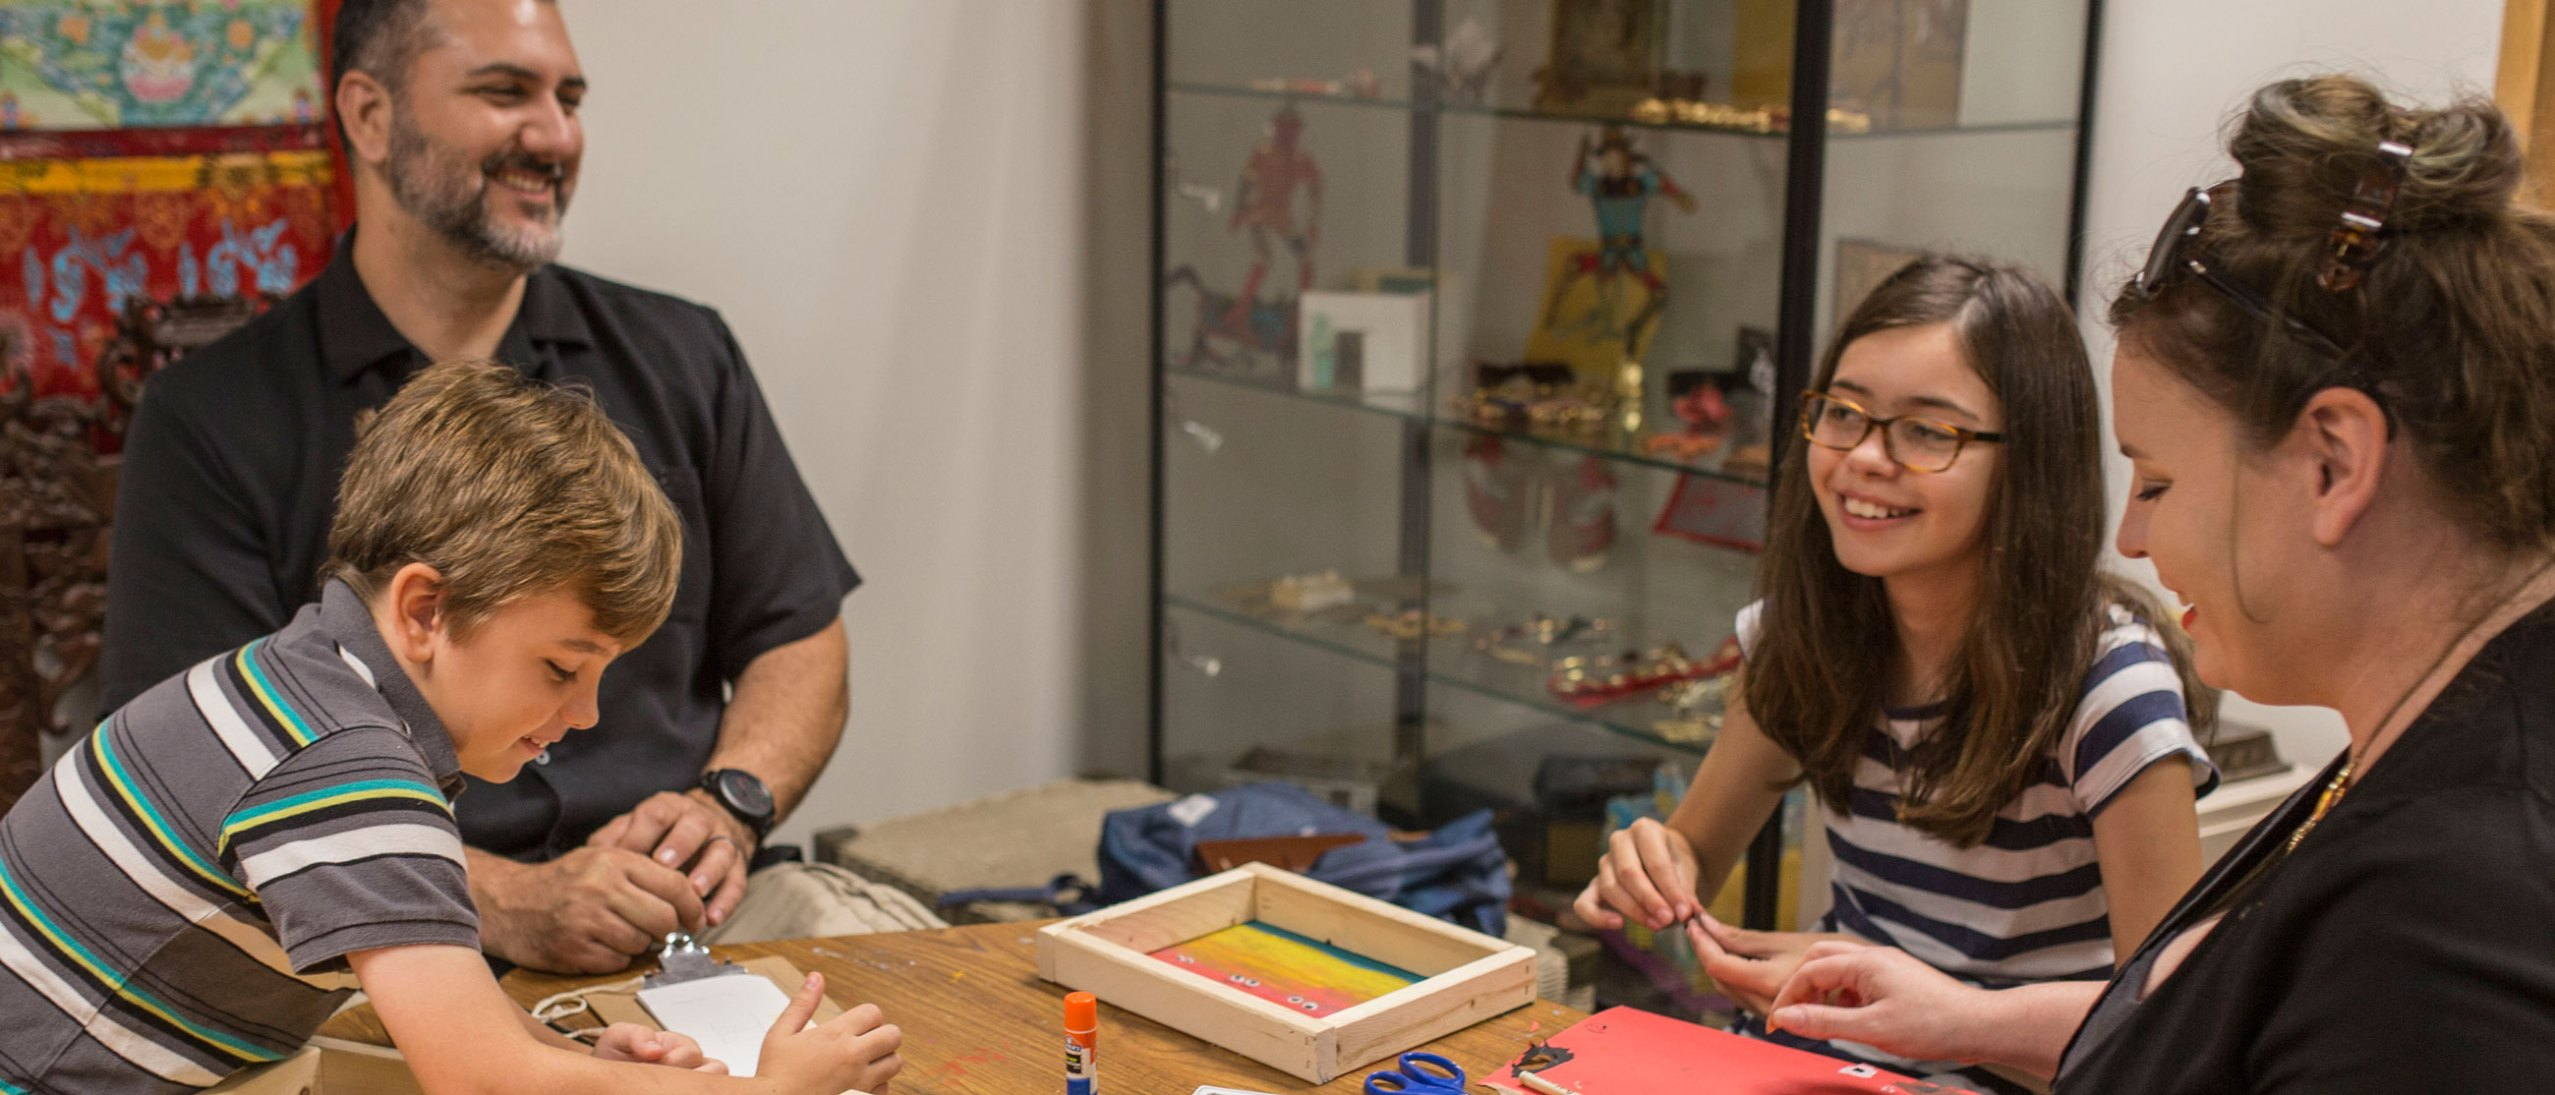 Family enjoys an ImaginAsia art workshop together